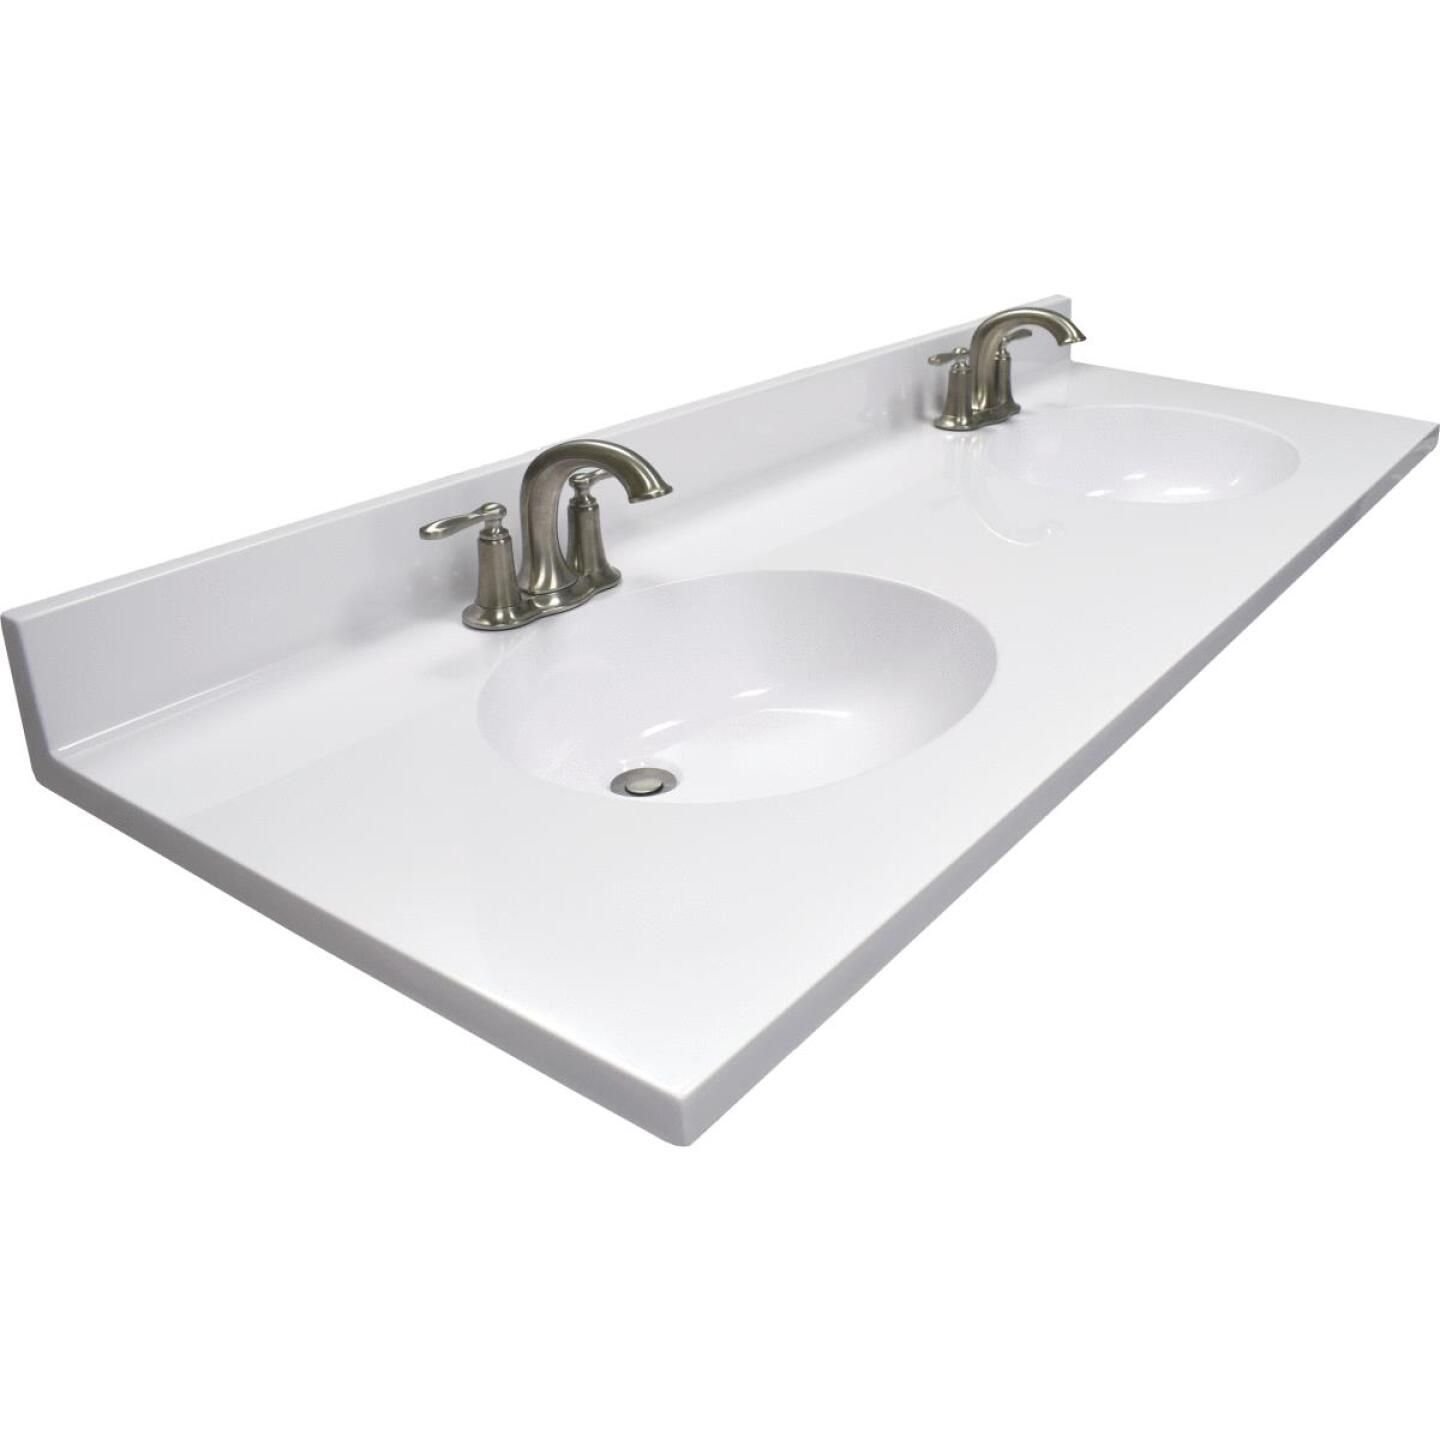 Modular Vanity Tops 61 In. W x 22 In. D Solid White Cultured Marble Vanity Top with Double Oval Bowl Image 1